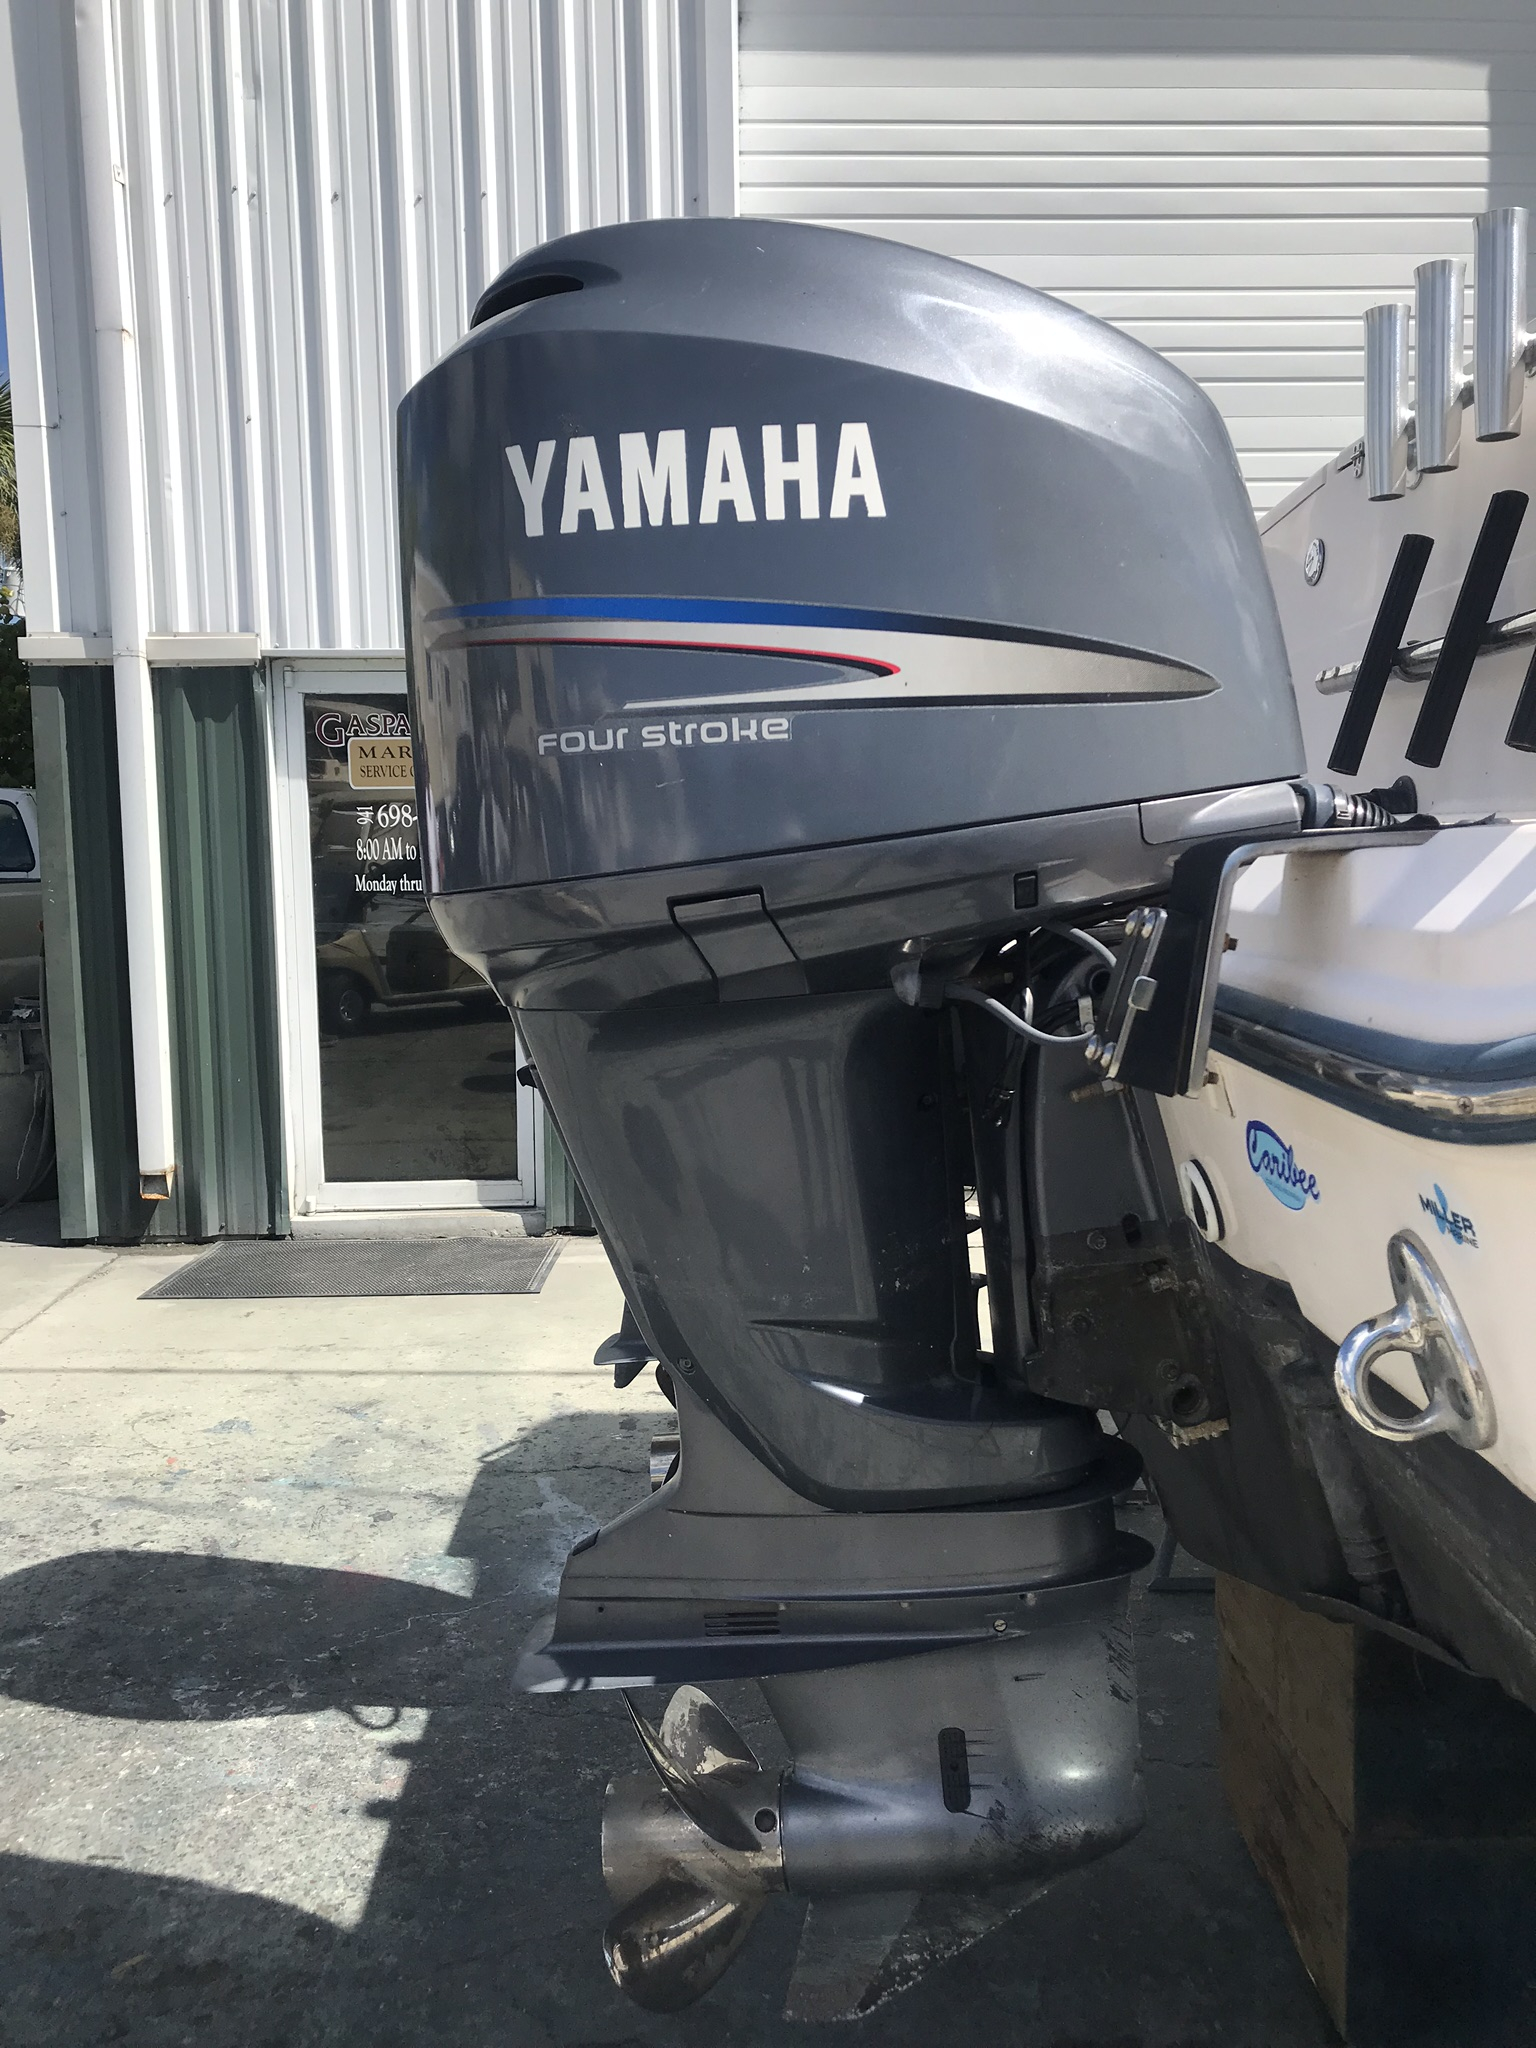 hight resolution of 2 sets of controls boat has a tower all must go cables wiring harness s gauges props etc 16500 00 obo message text or call 941 650 0677